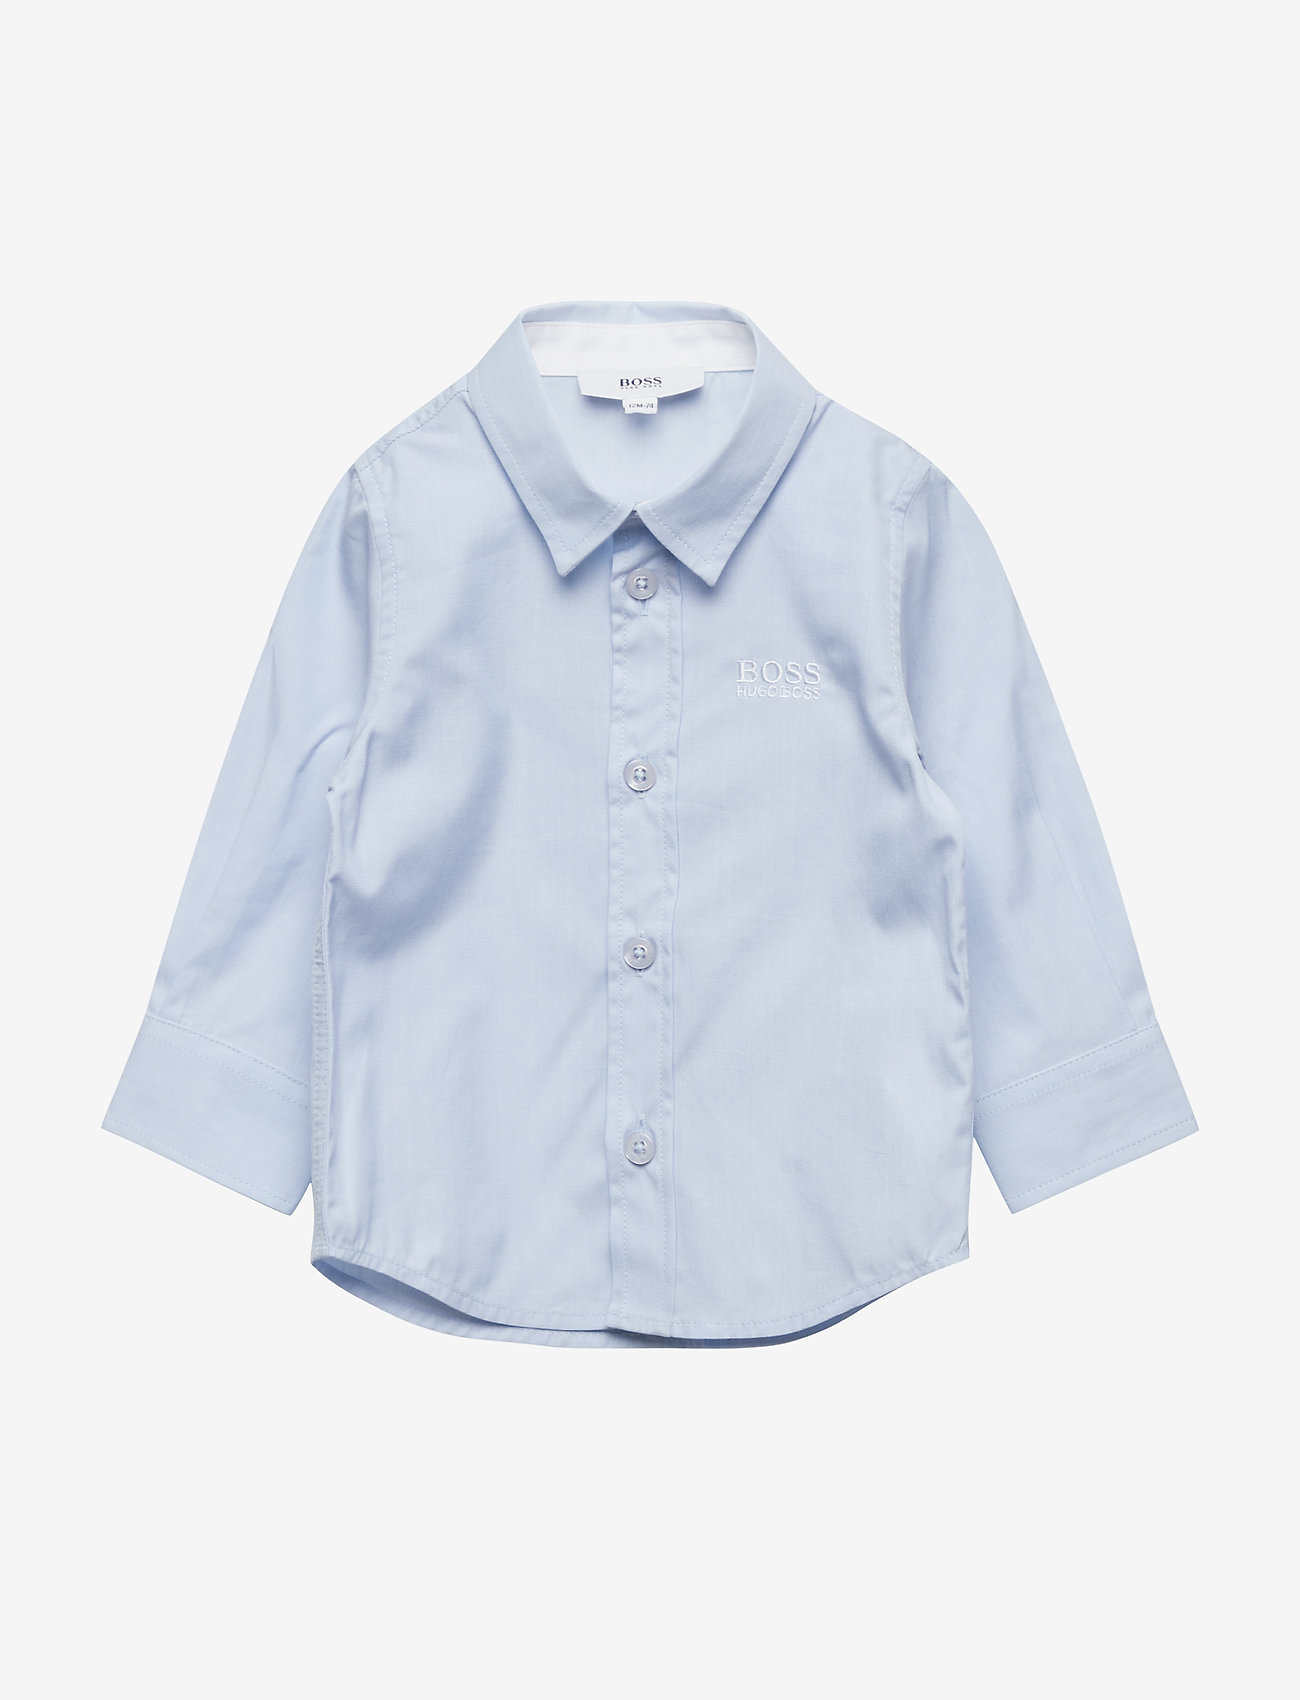 BOSS - SHIRT - overhemden - pale blue - 0